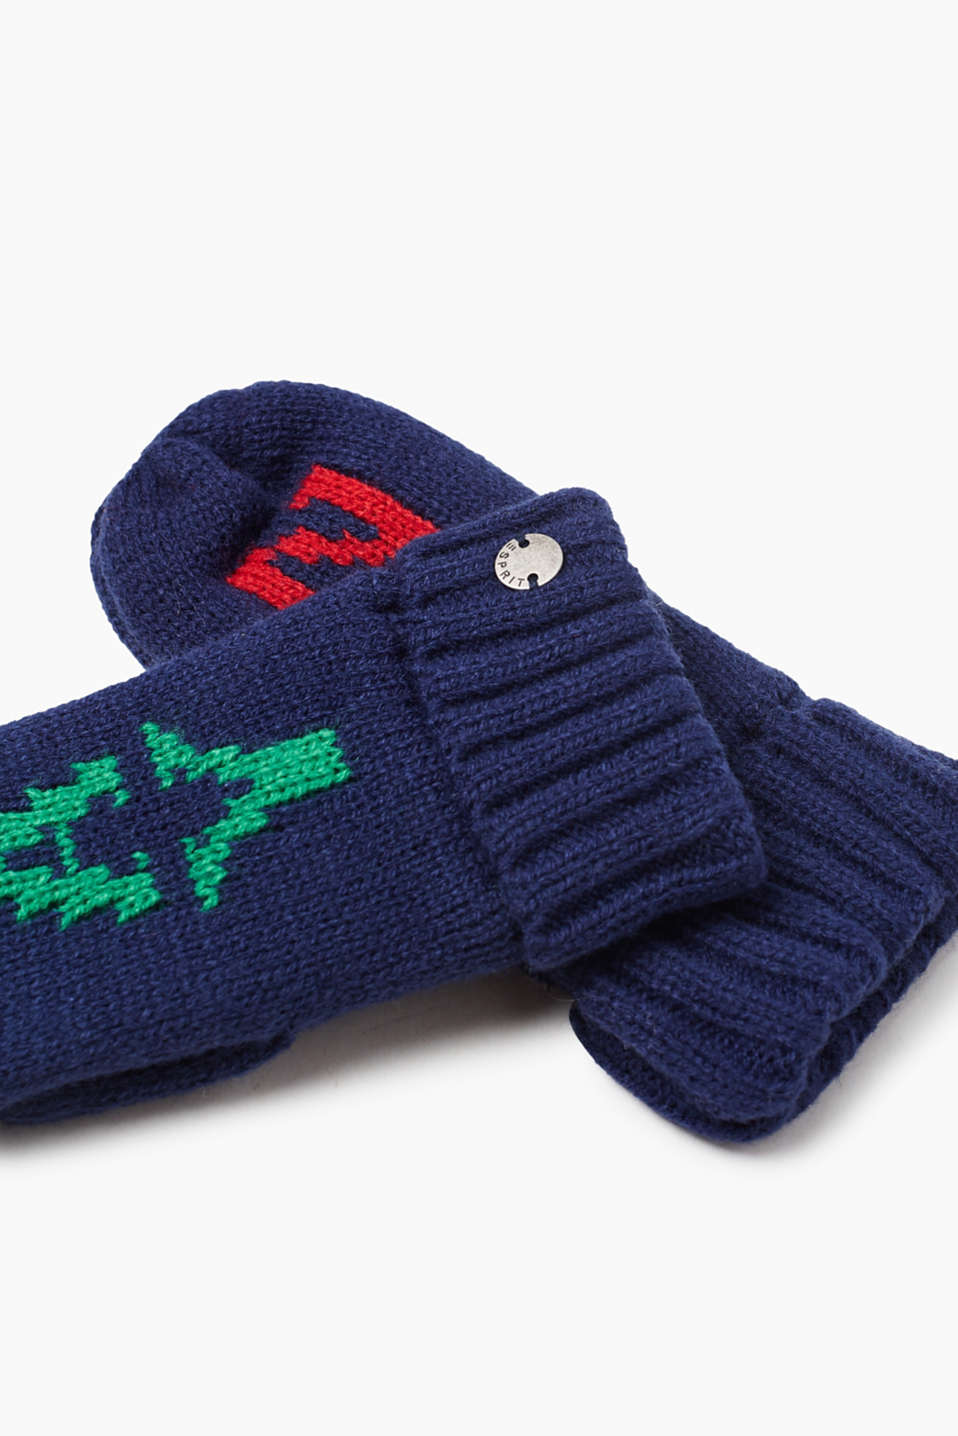 Knit mittens with jersey lining